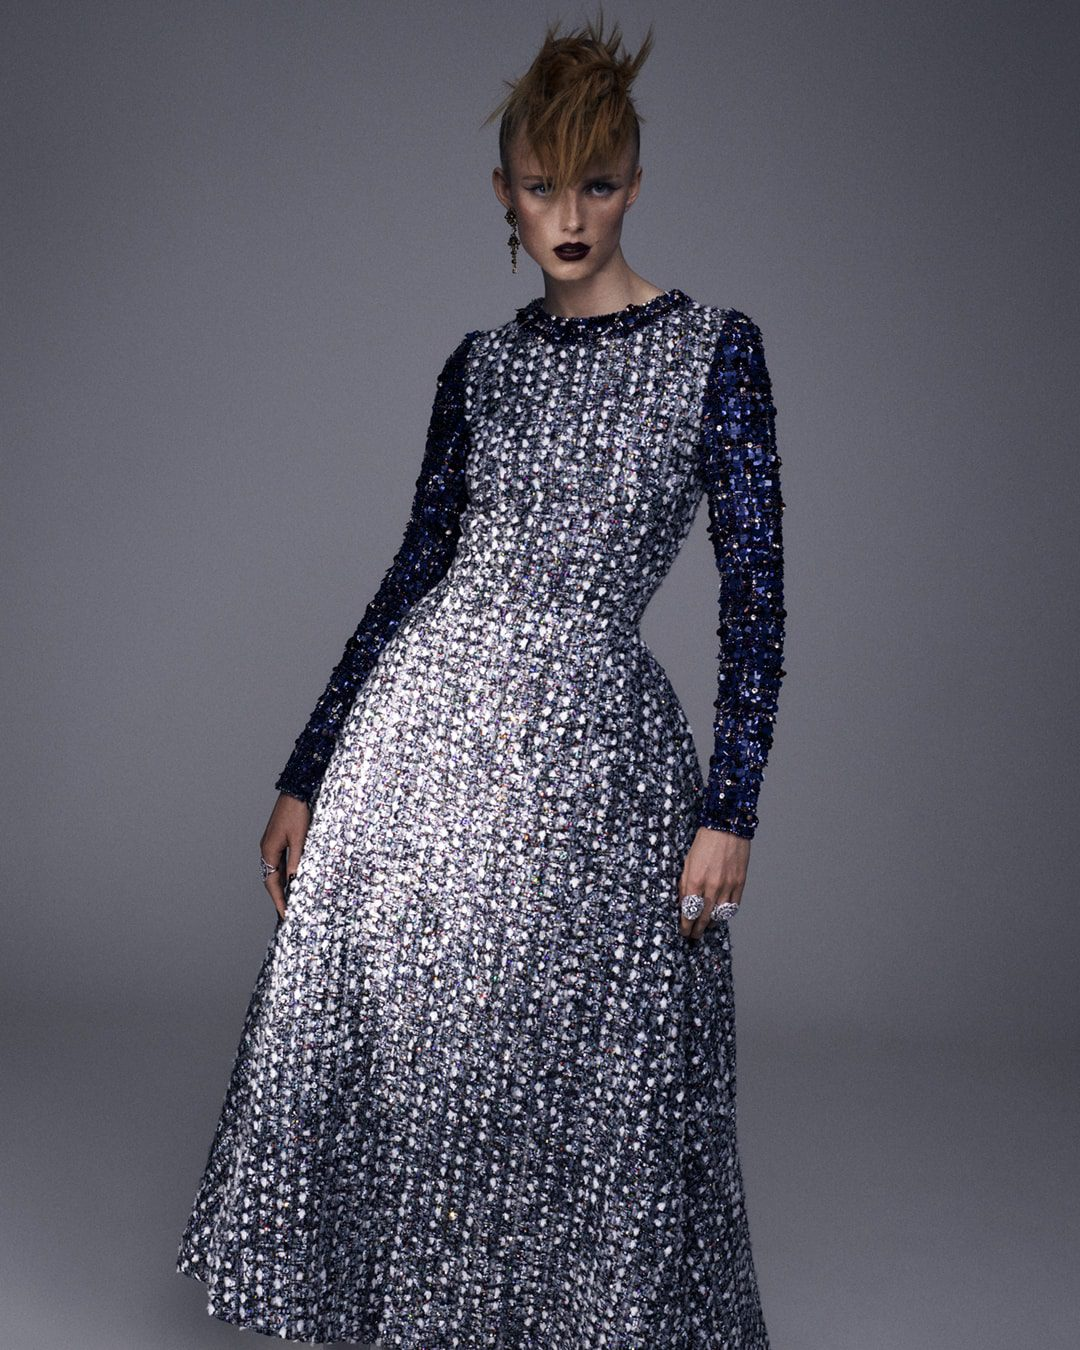 Chanel Haute Couture Fall-Winter 2020-2021 by RUNWAY MAGAZINE